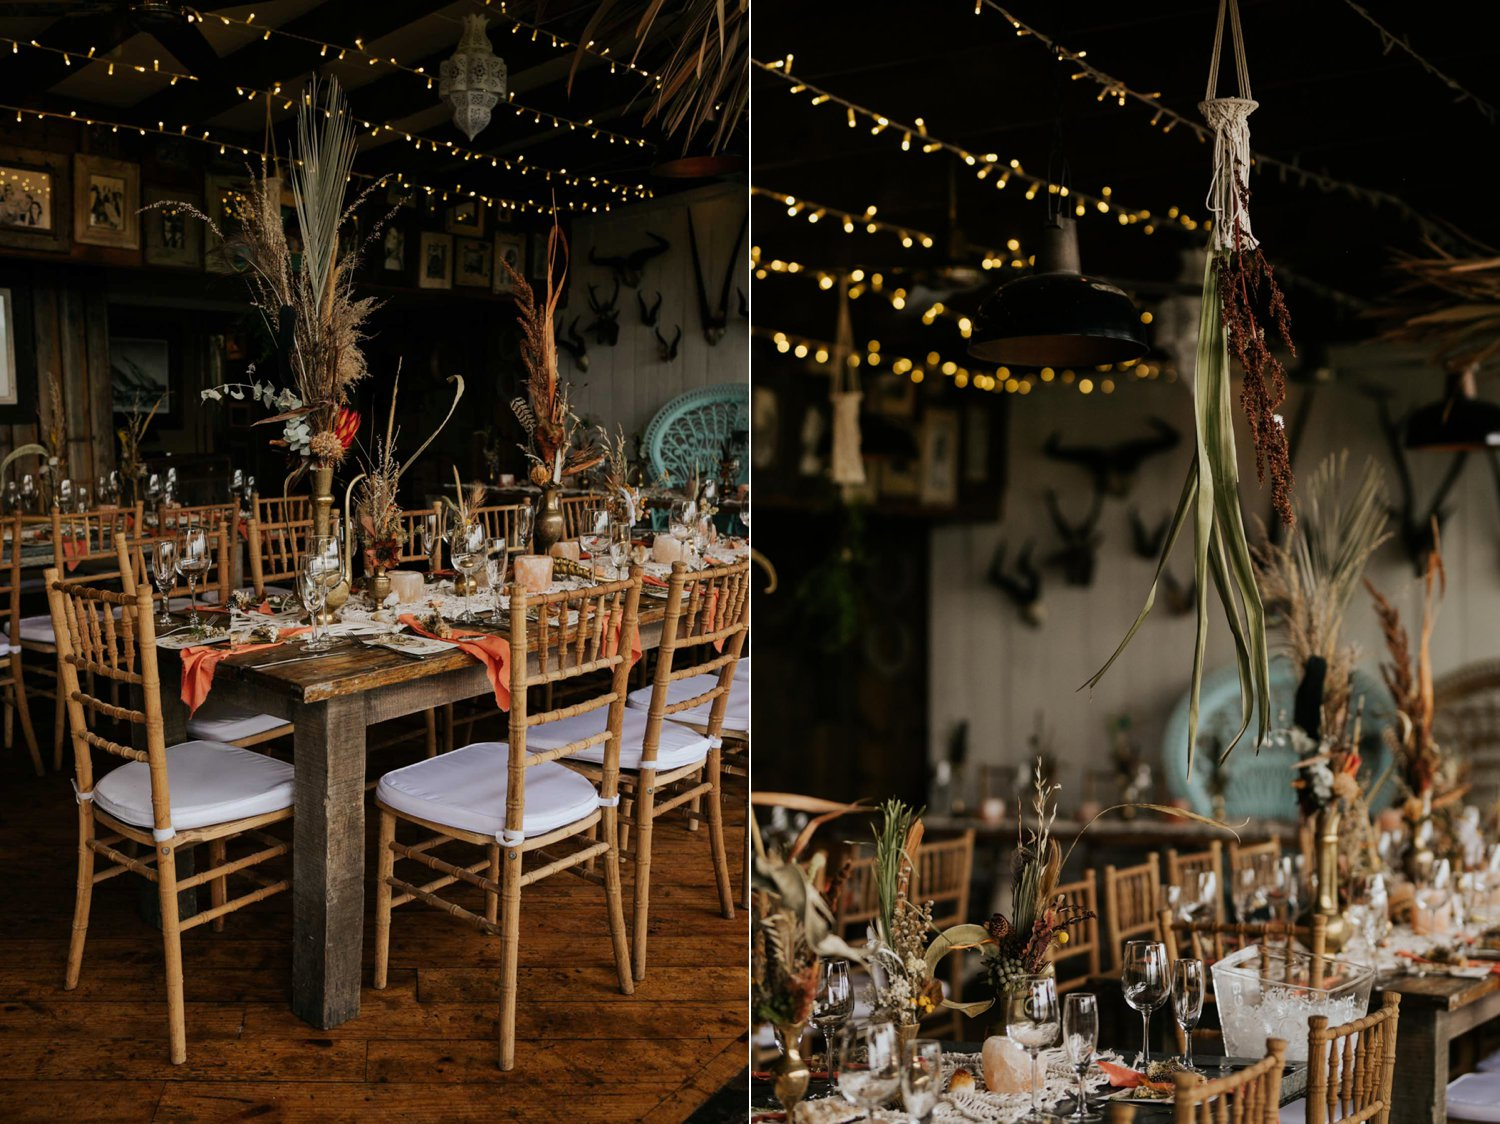 Boho inspired wedding decor of rustic wooden chairs, woven macrame table runners, feather and dried flower arrangements, skull table numbers and gemstones